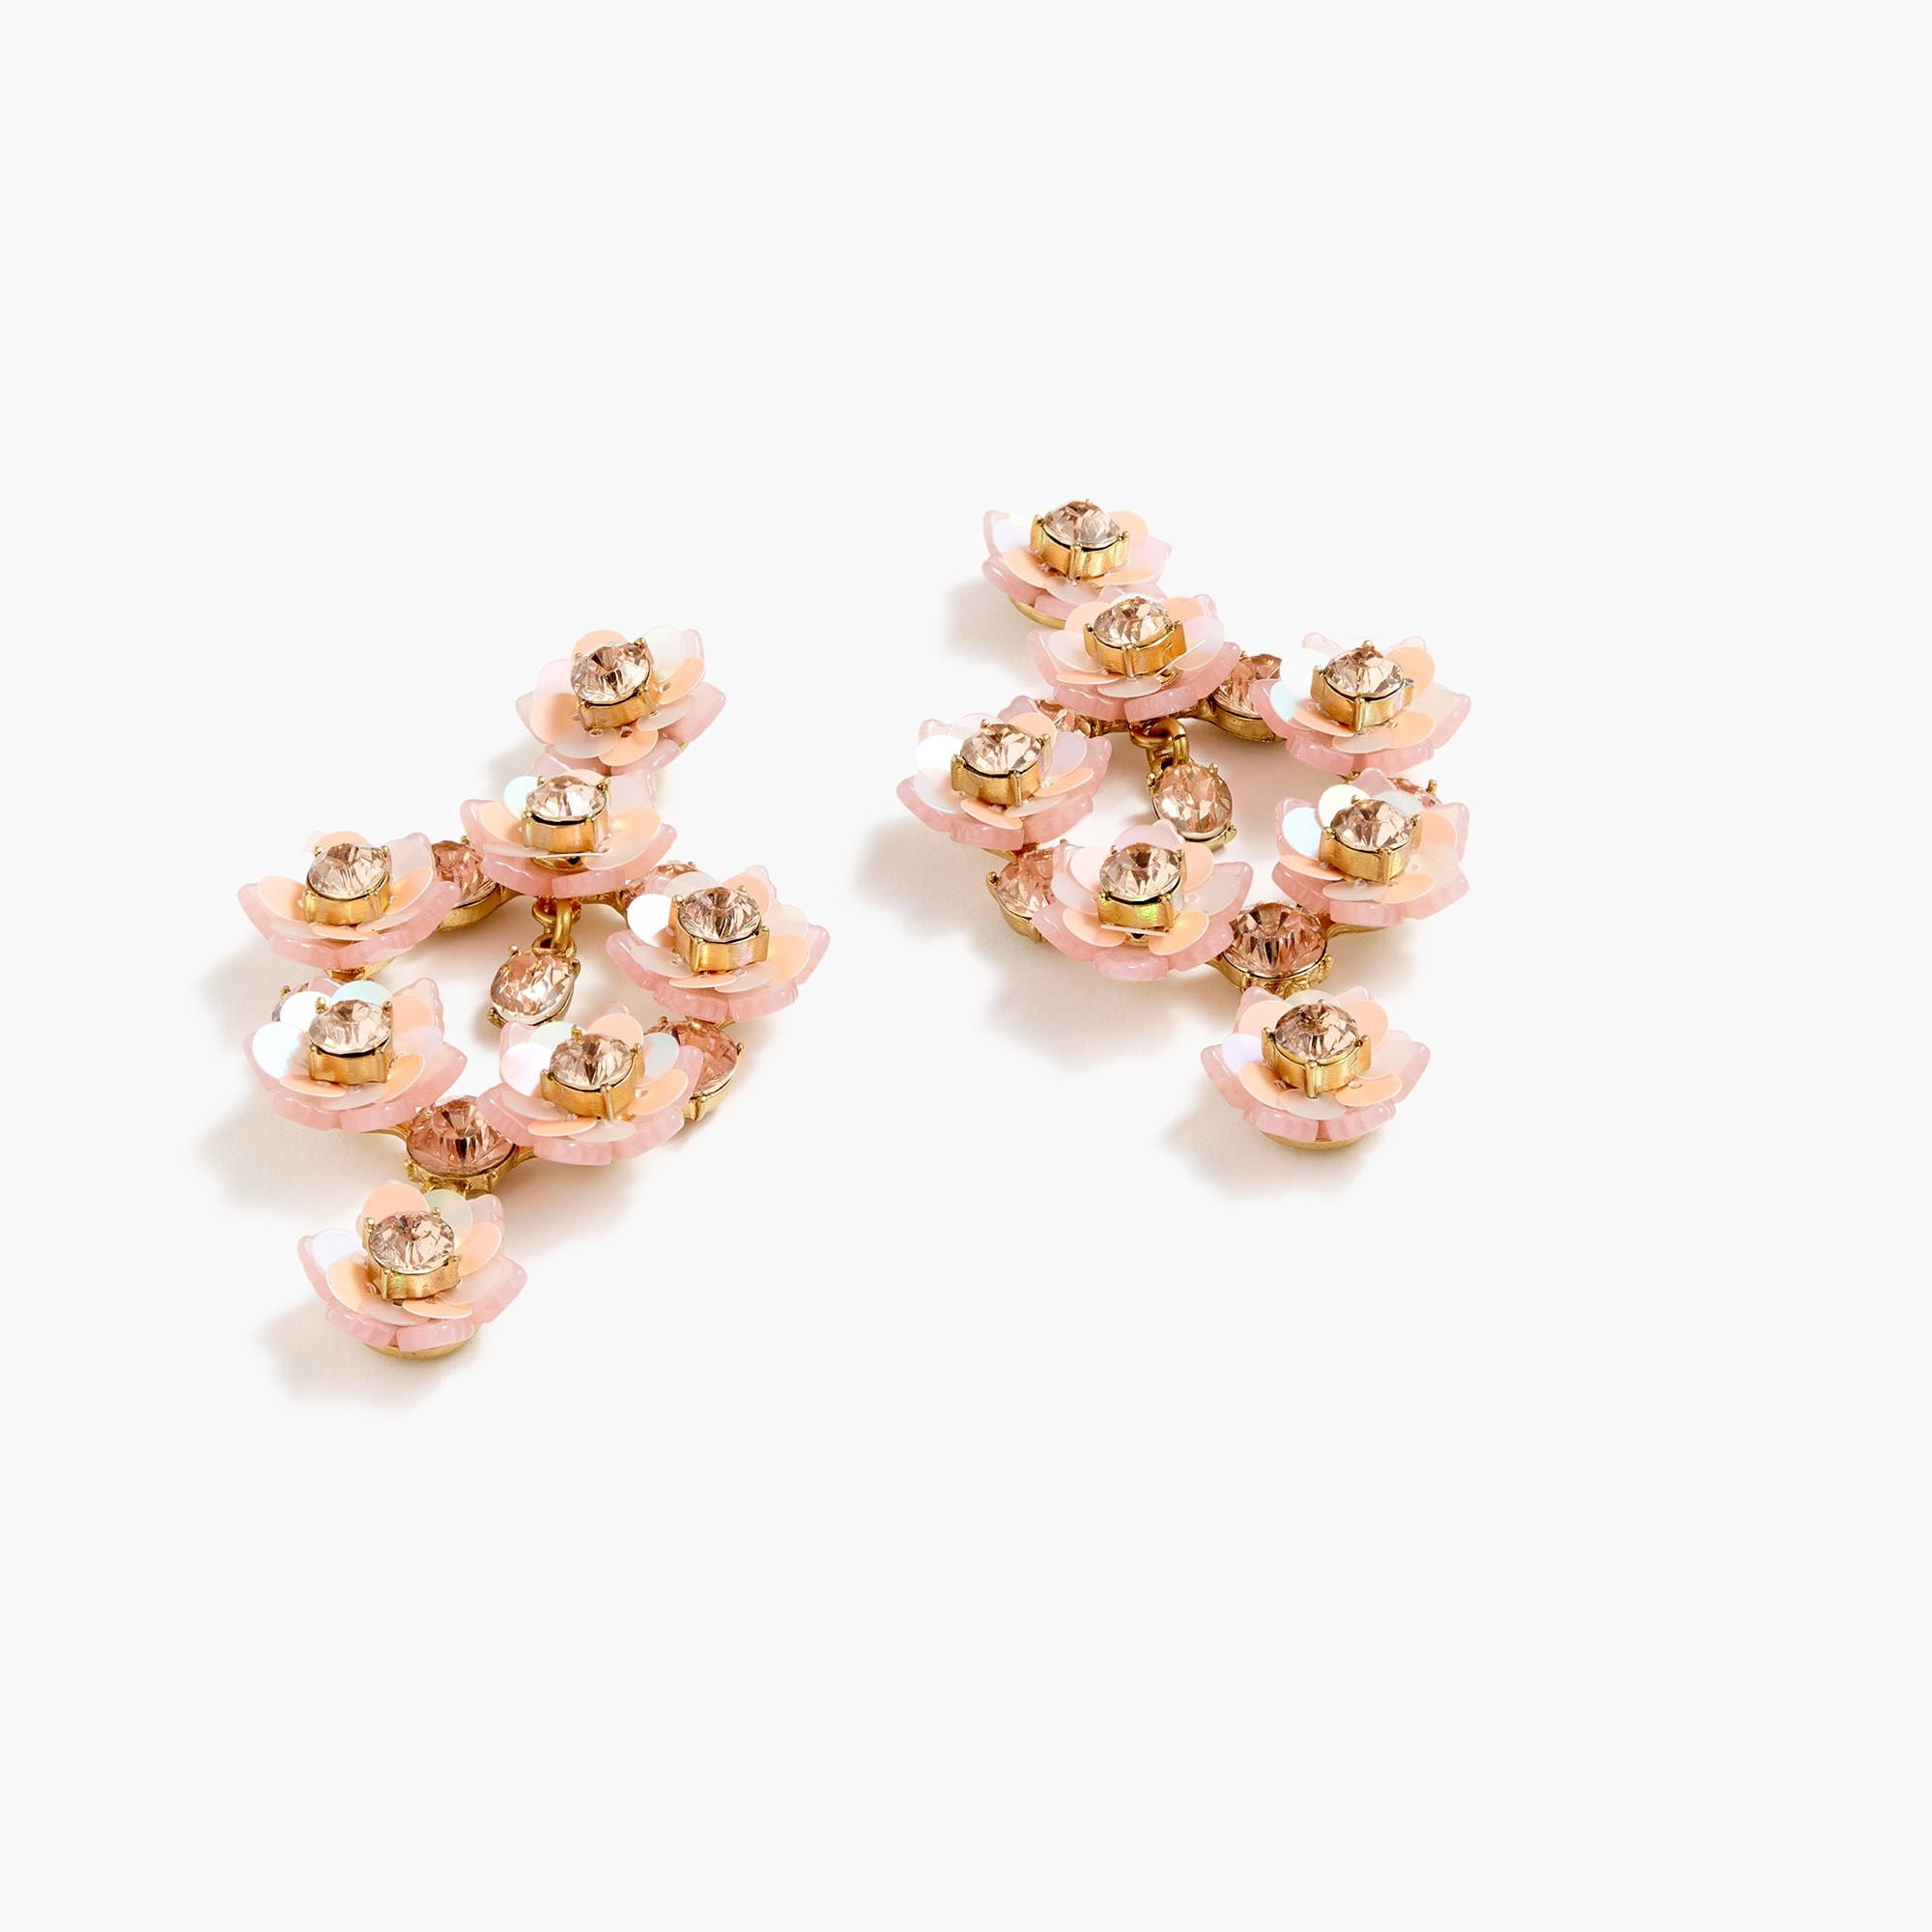 Flower blossom statement earrings women new arrivals c